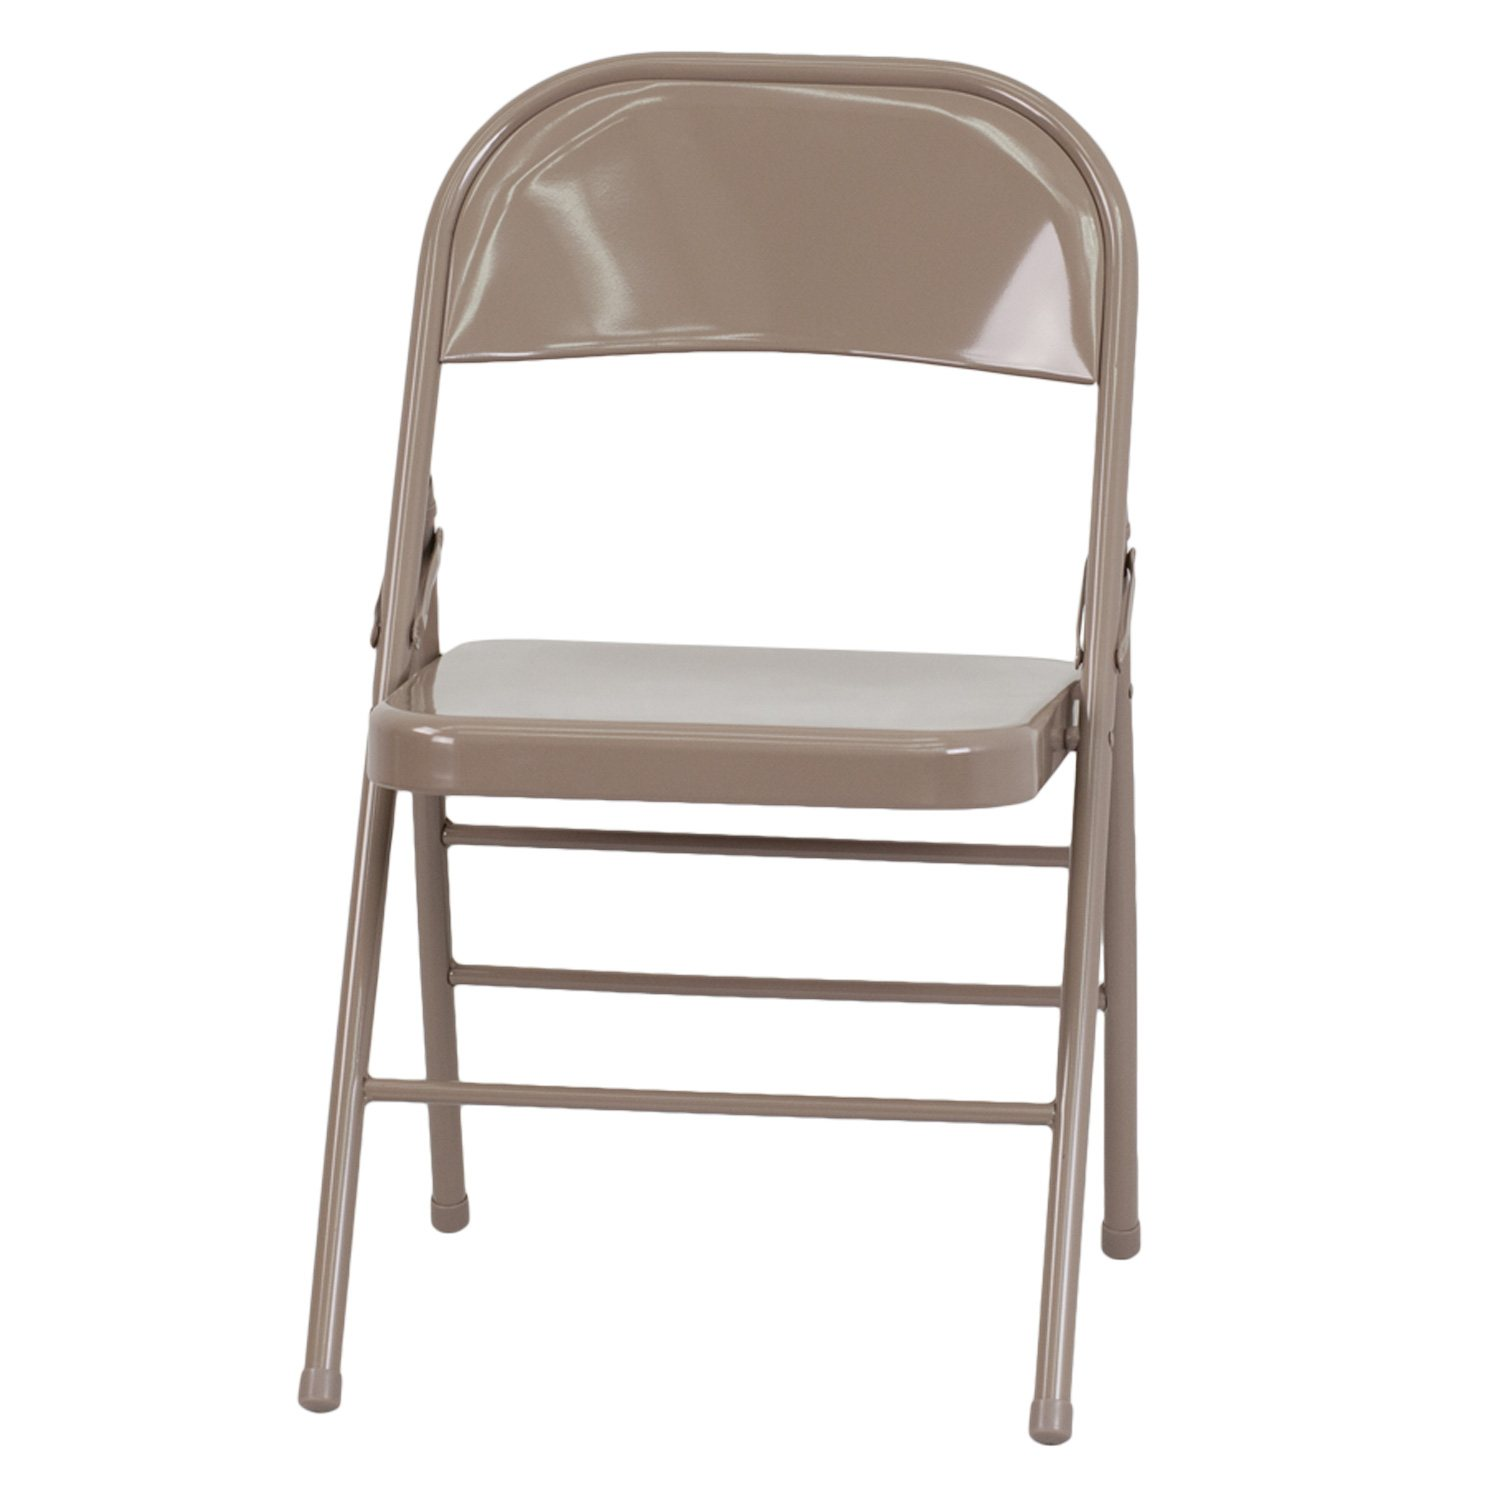 Hercules Metal Folding Chairs Beige Sam s Club